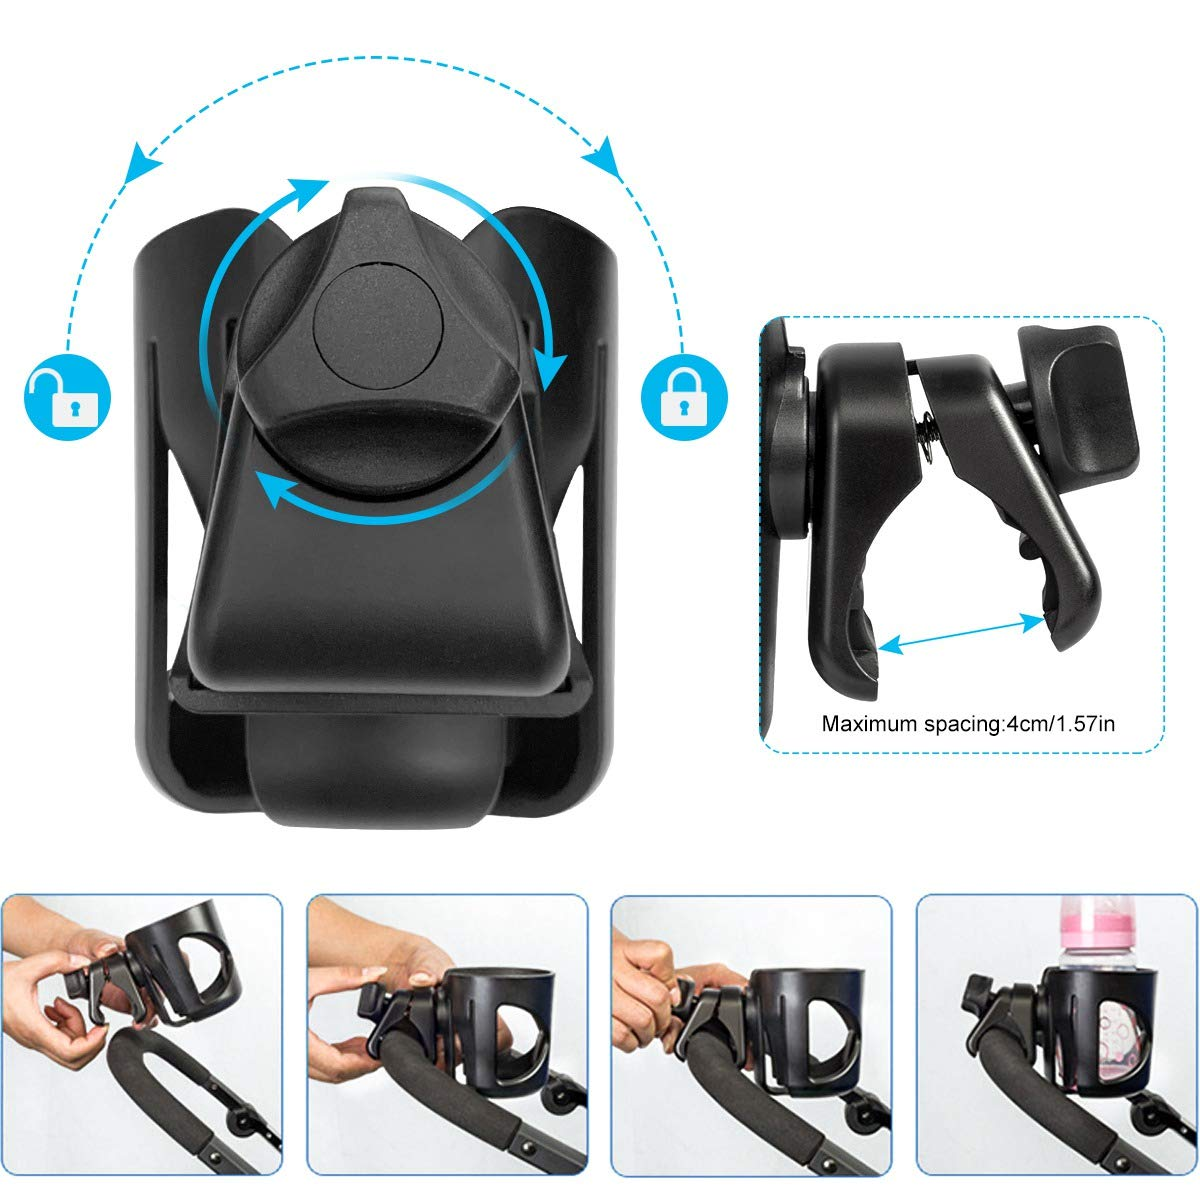 Pram Cup Holder, VDROL Stroller/Pushchair Cup Holder with 2 Hooks, Universal Baby Bottle Organizer for Stroller, Drink and Coffee Cup Holder for Baby Buggy and Bike, 360 Degree Rotation (Black)